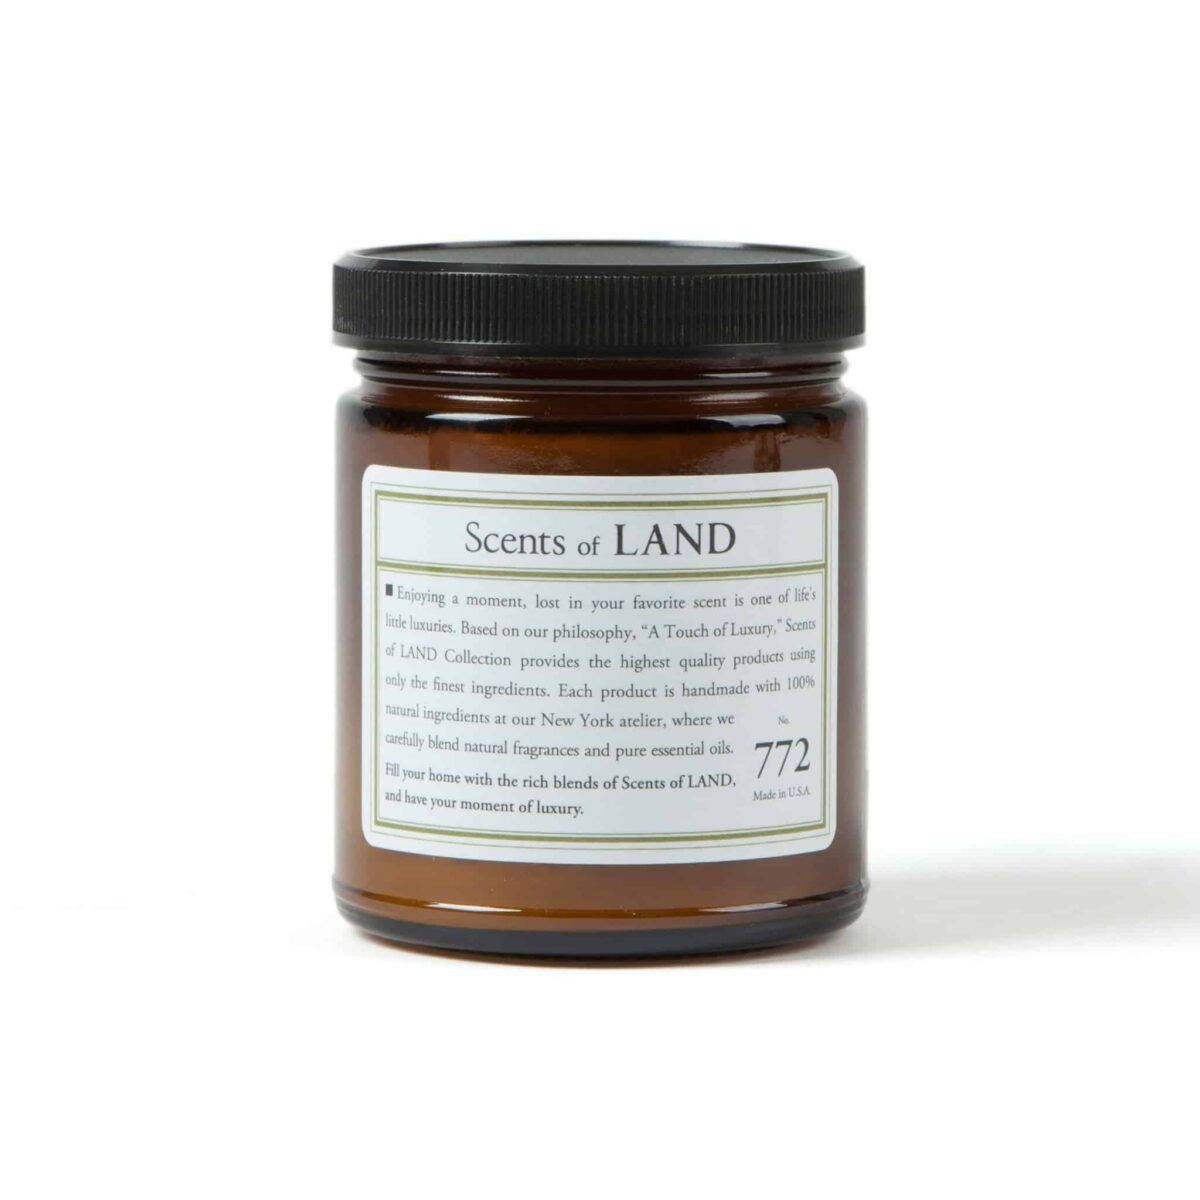 Land-by-land-scent-of-land-candle-772-oak-002